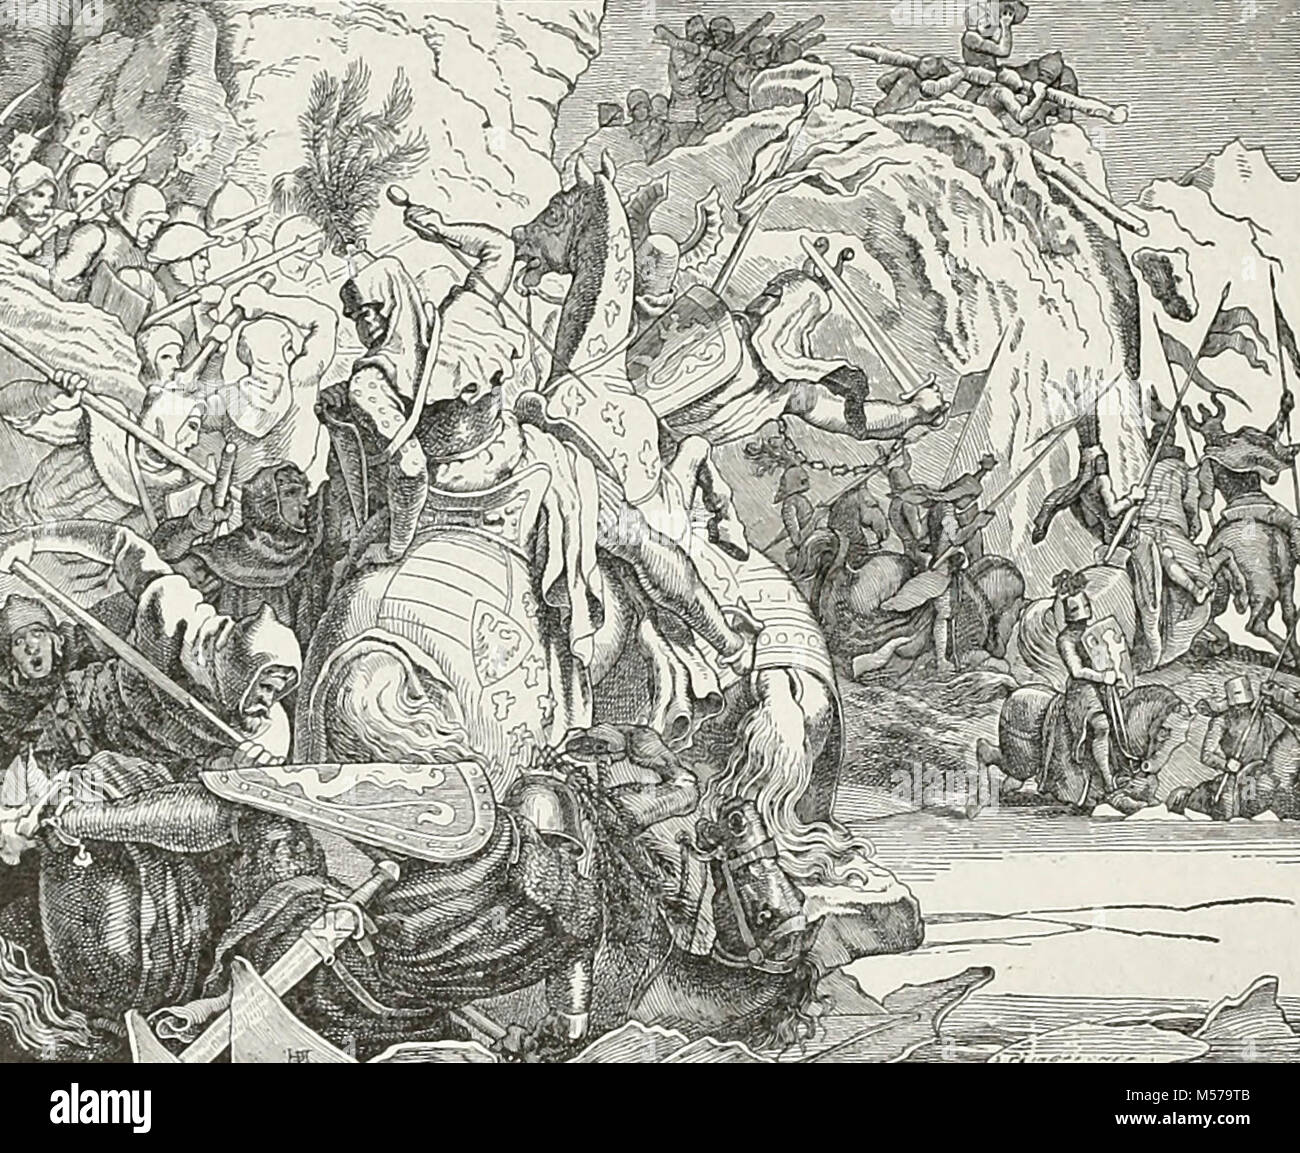 The Battle at Morgarten. The Battle of Morgarten occurred on 15 November 1315, when a 1,500-strong force from the - Stock Image